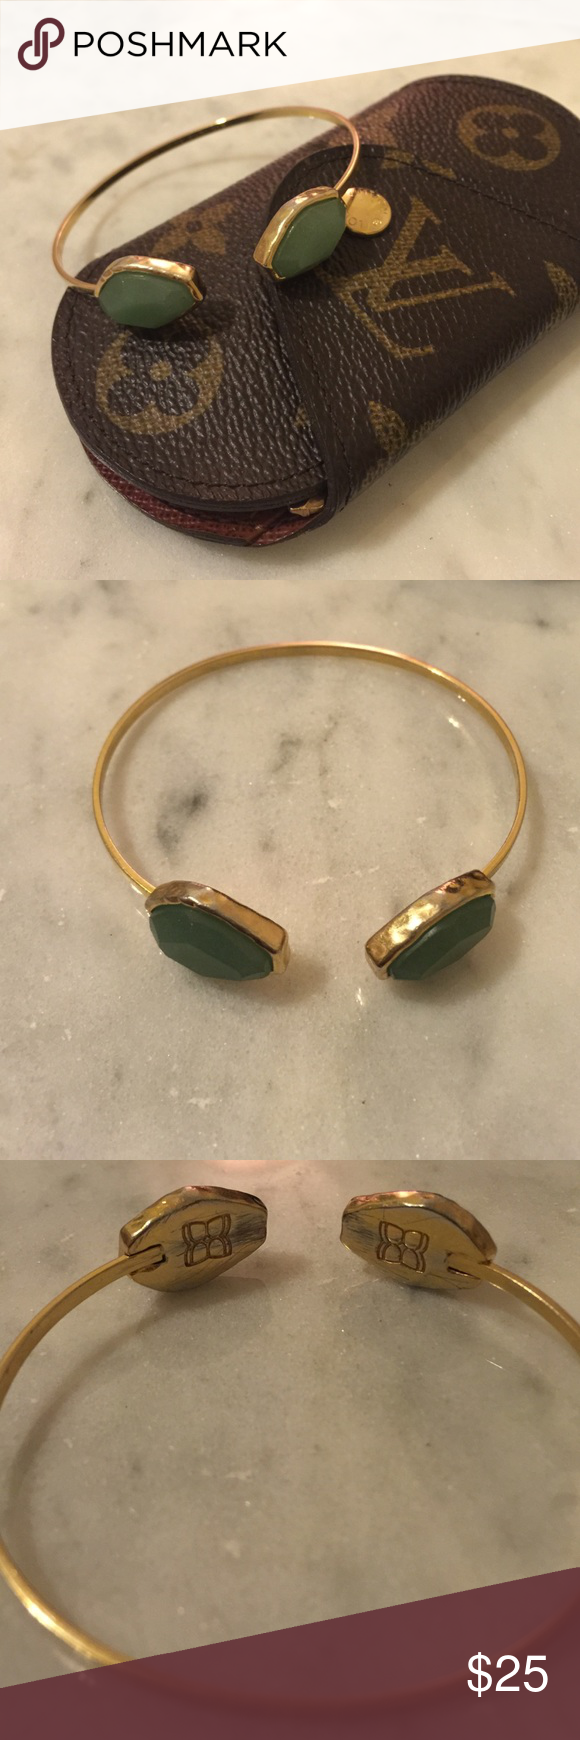 BCBG Max Arizia Bracelet BCBG Max Arizia Bracelet Gold Tone Jade. Only scratch is on the inside portion of logo hidden on arm. The actual bracelet and stone is great condition. See the detailed photos BCBGMaxAzria Jewelry Bracelets